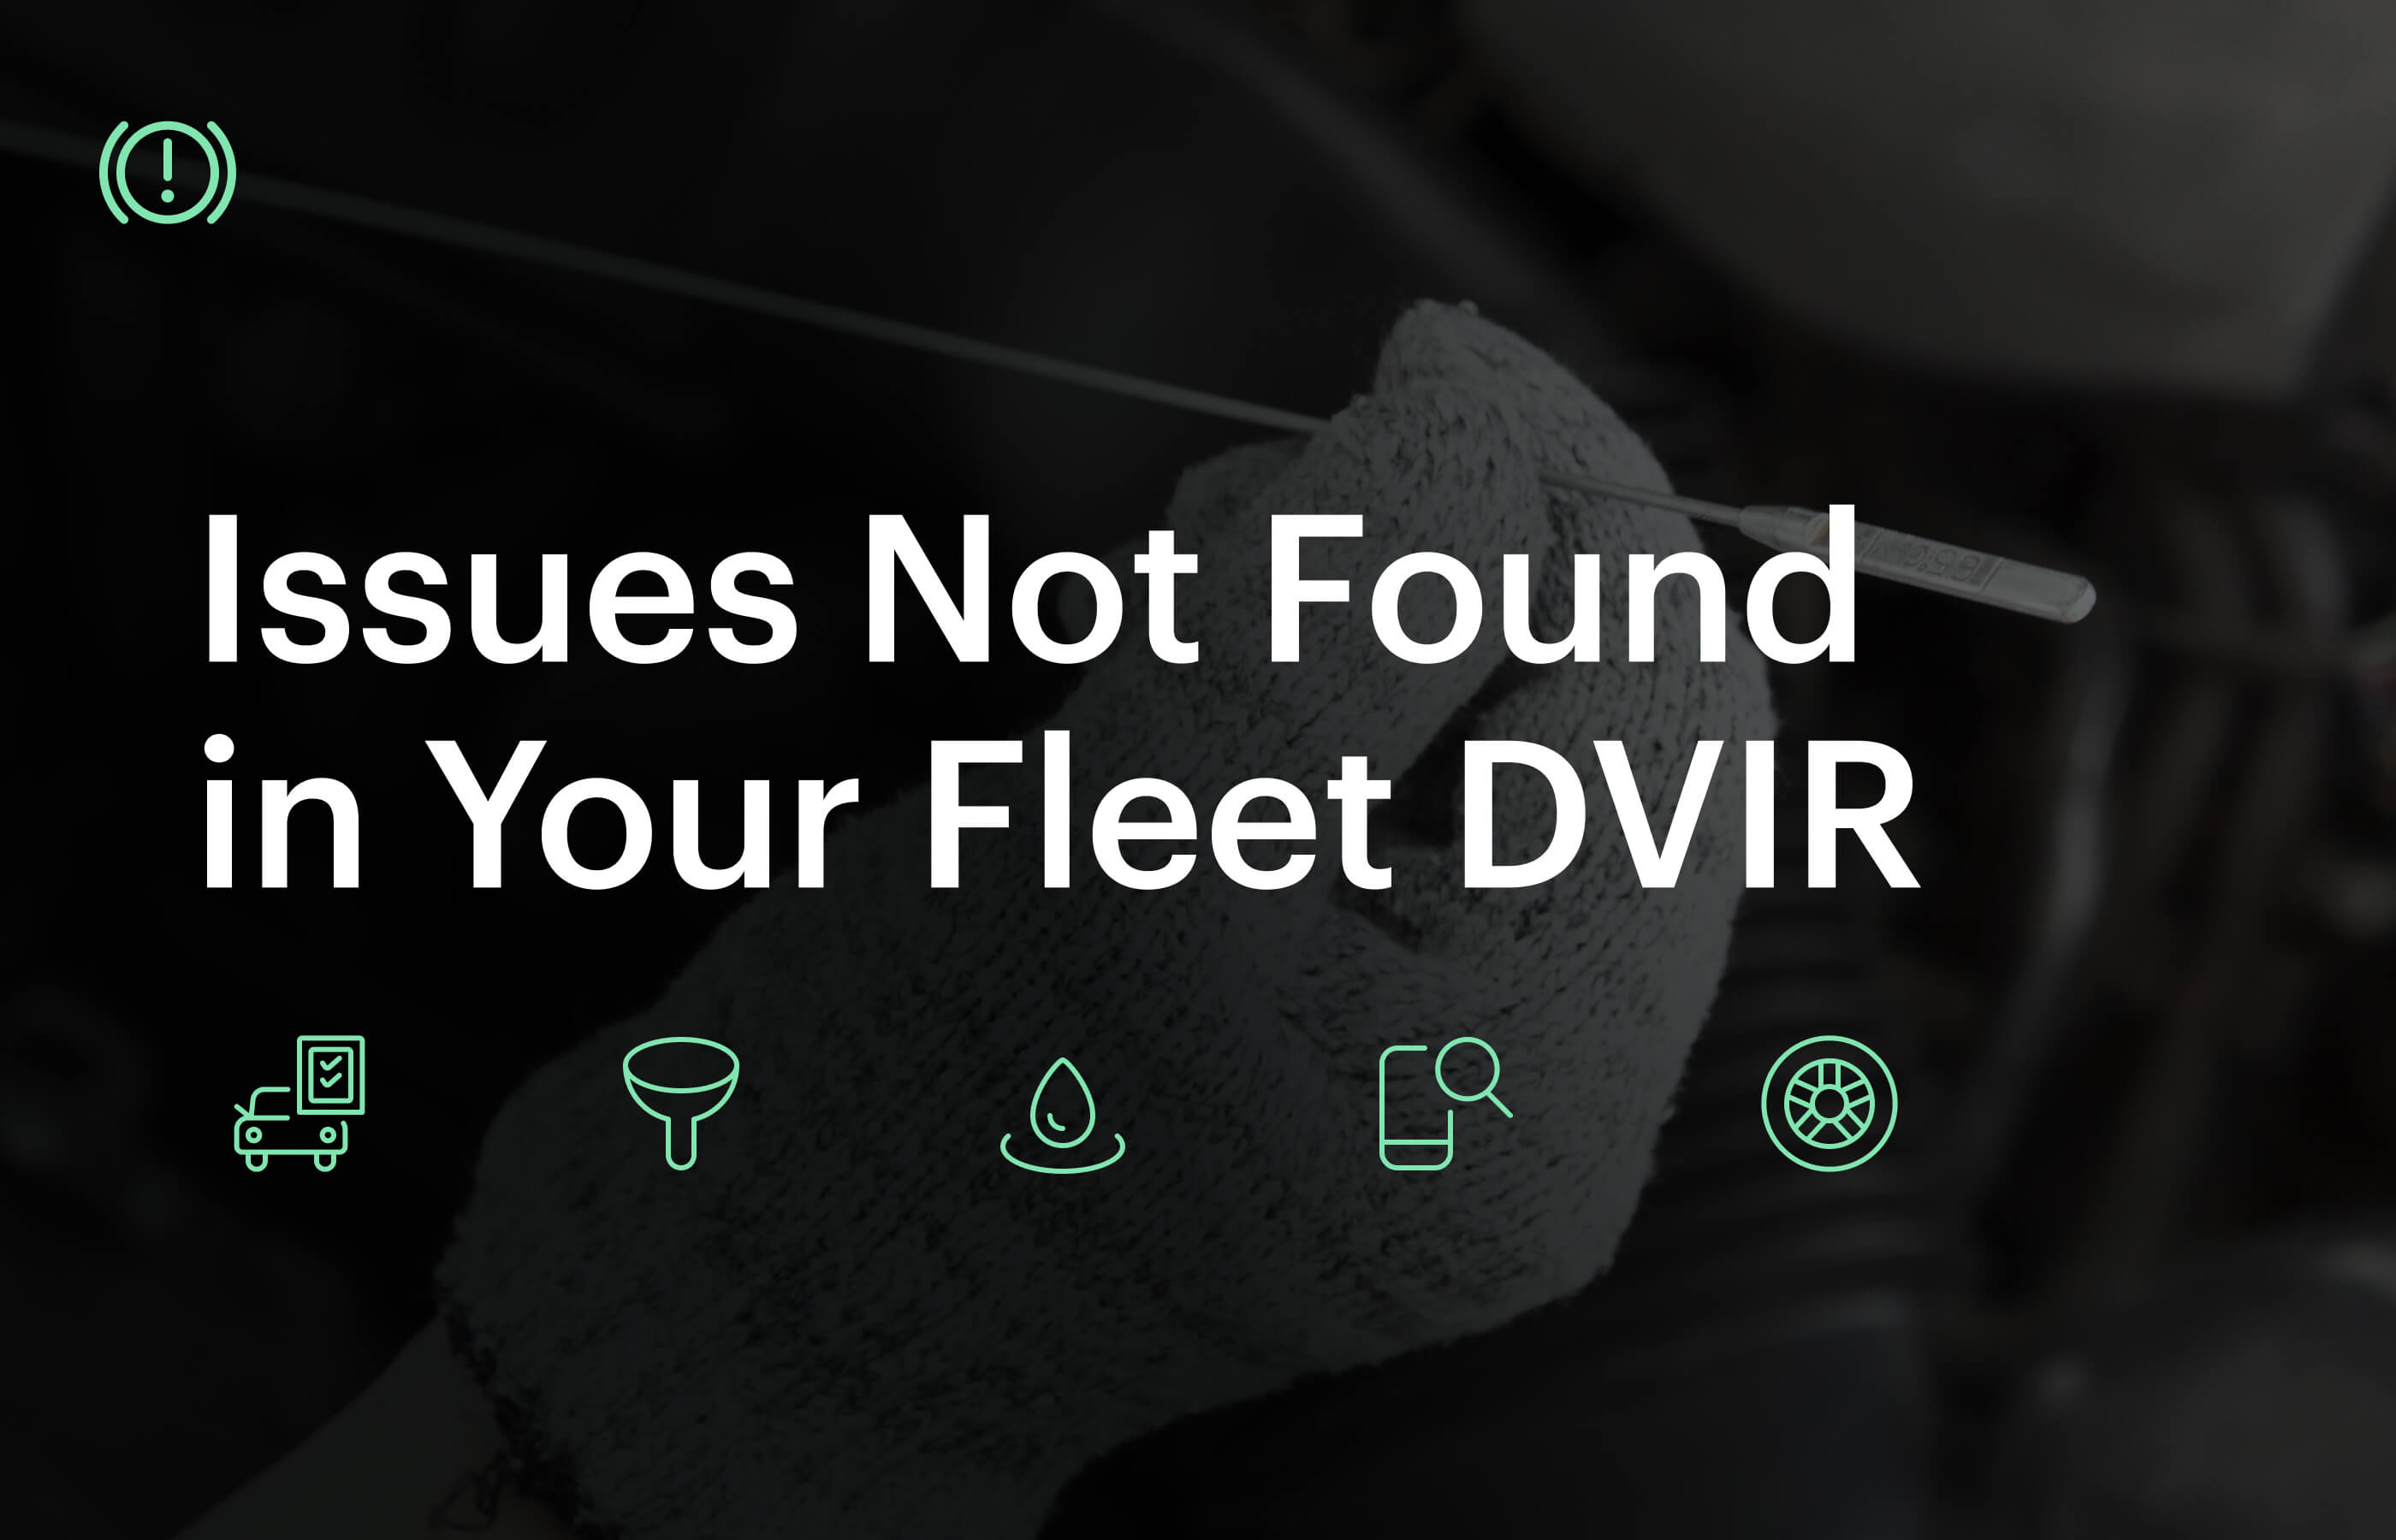 Issues not found on dvir